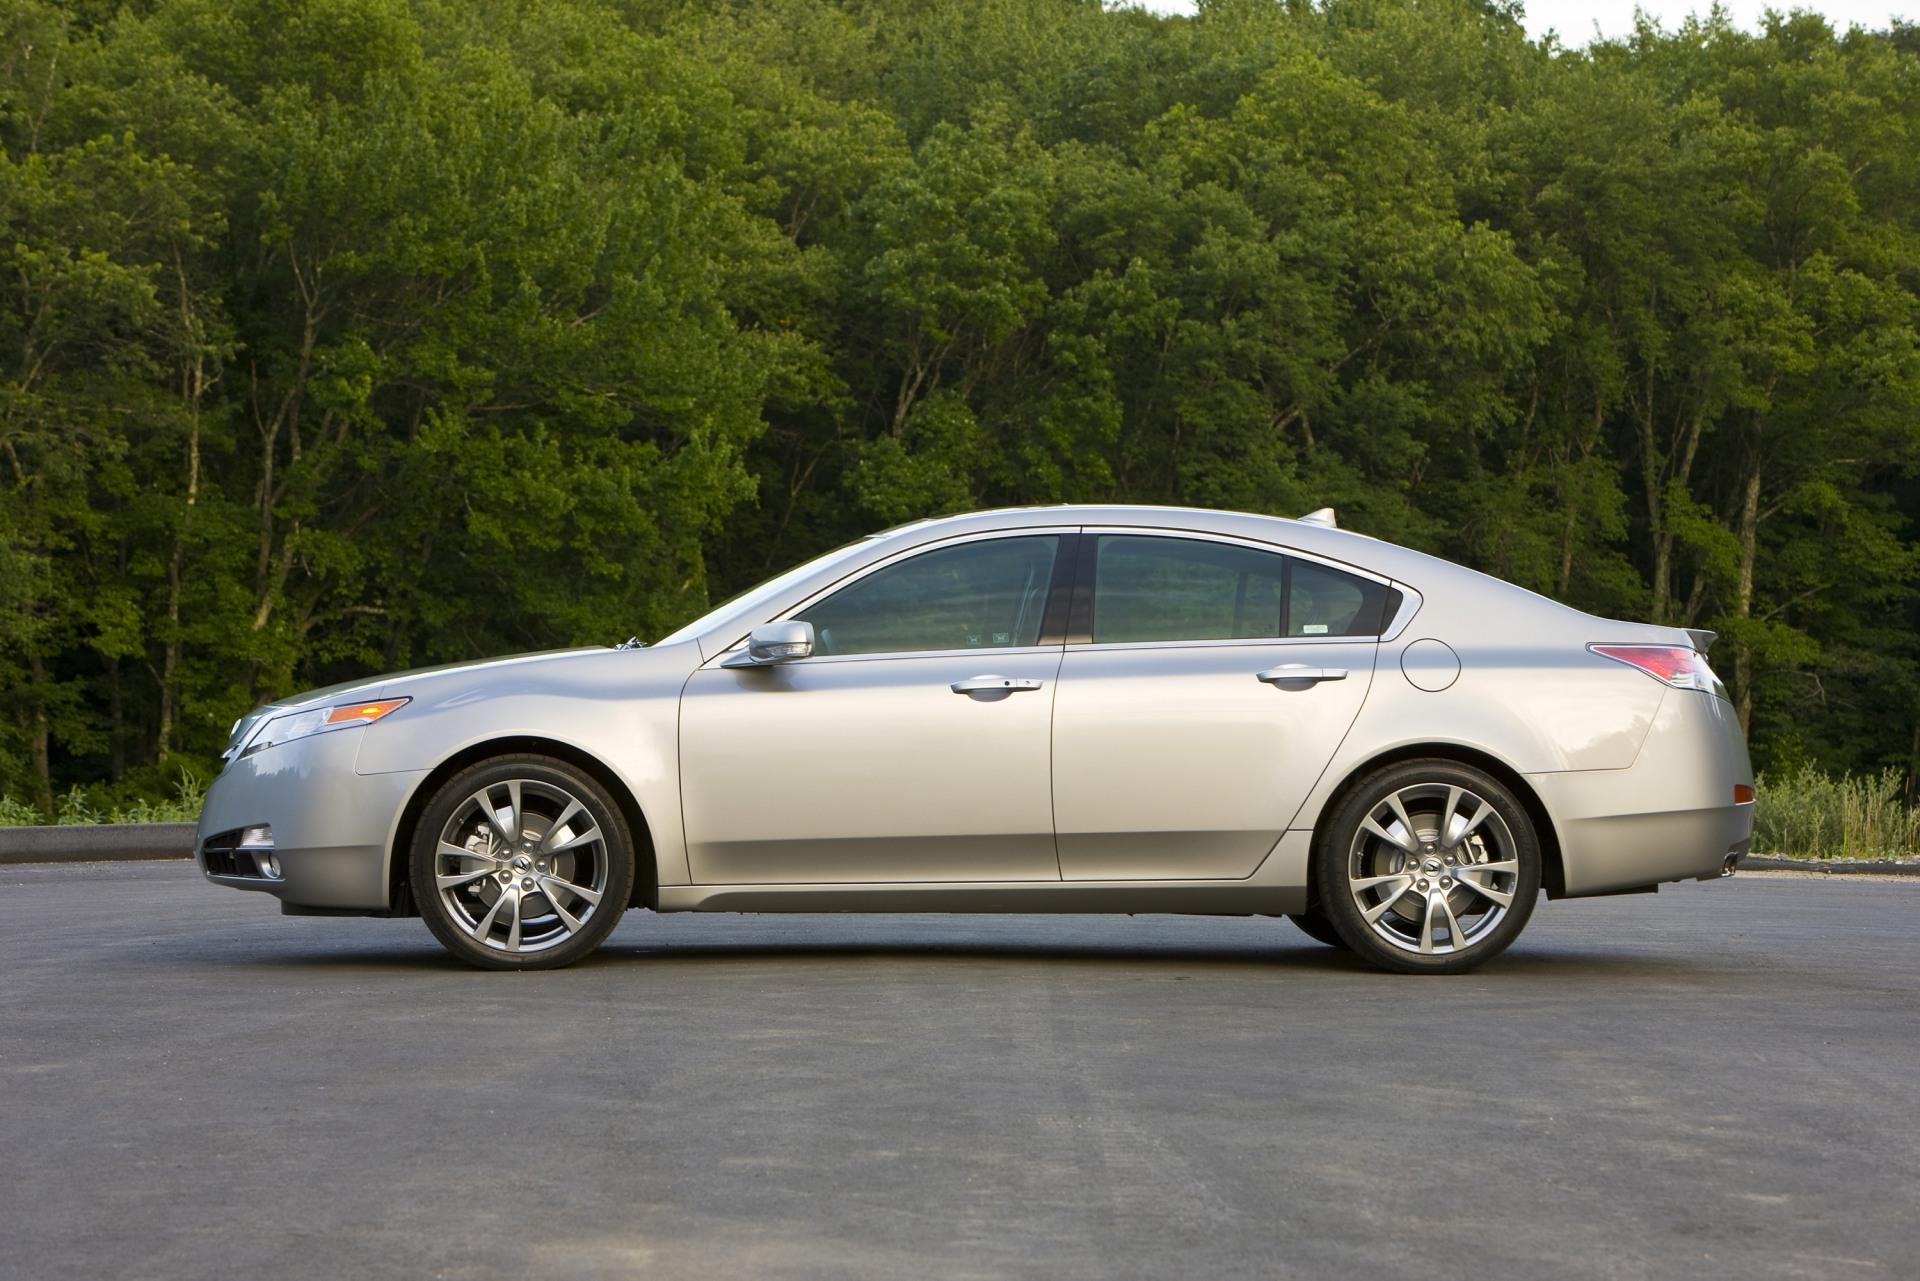 sale tl inventory fl in for acura gainesville